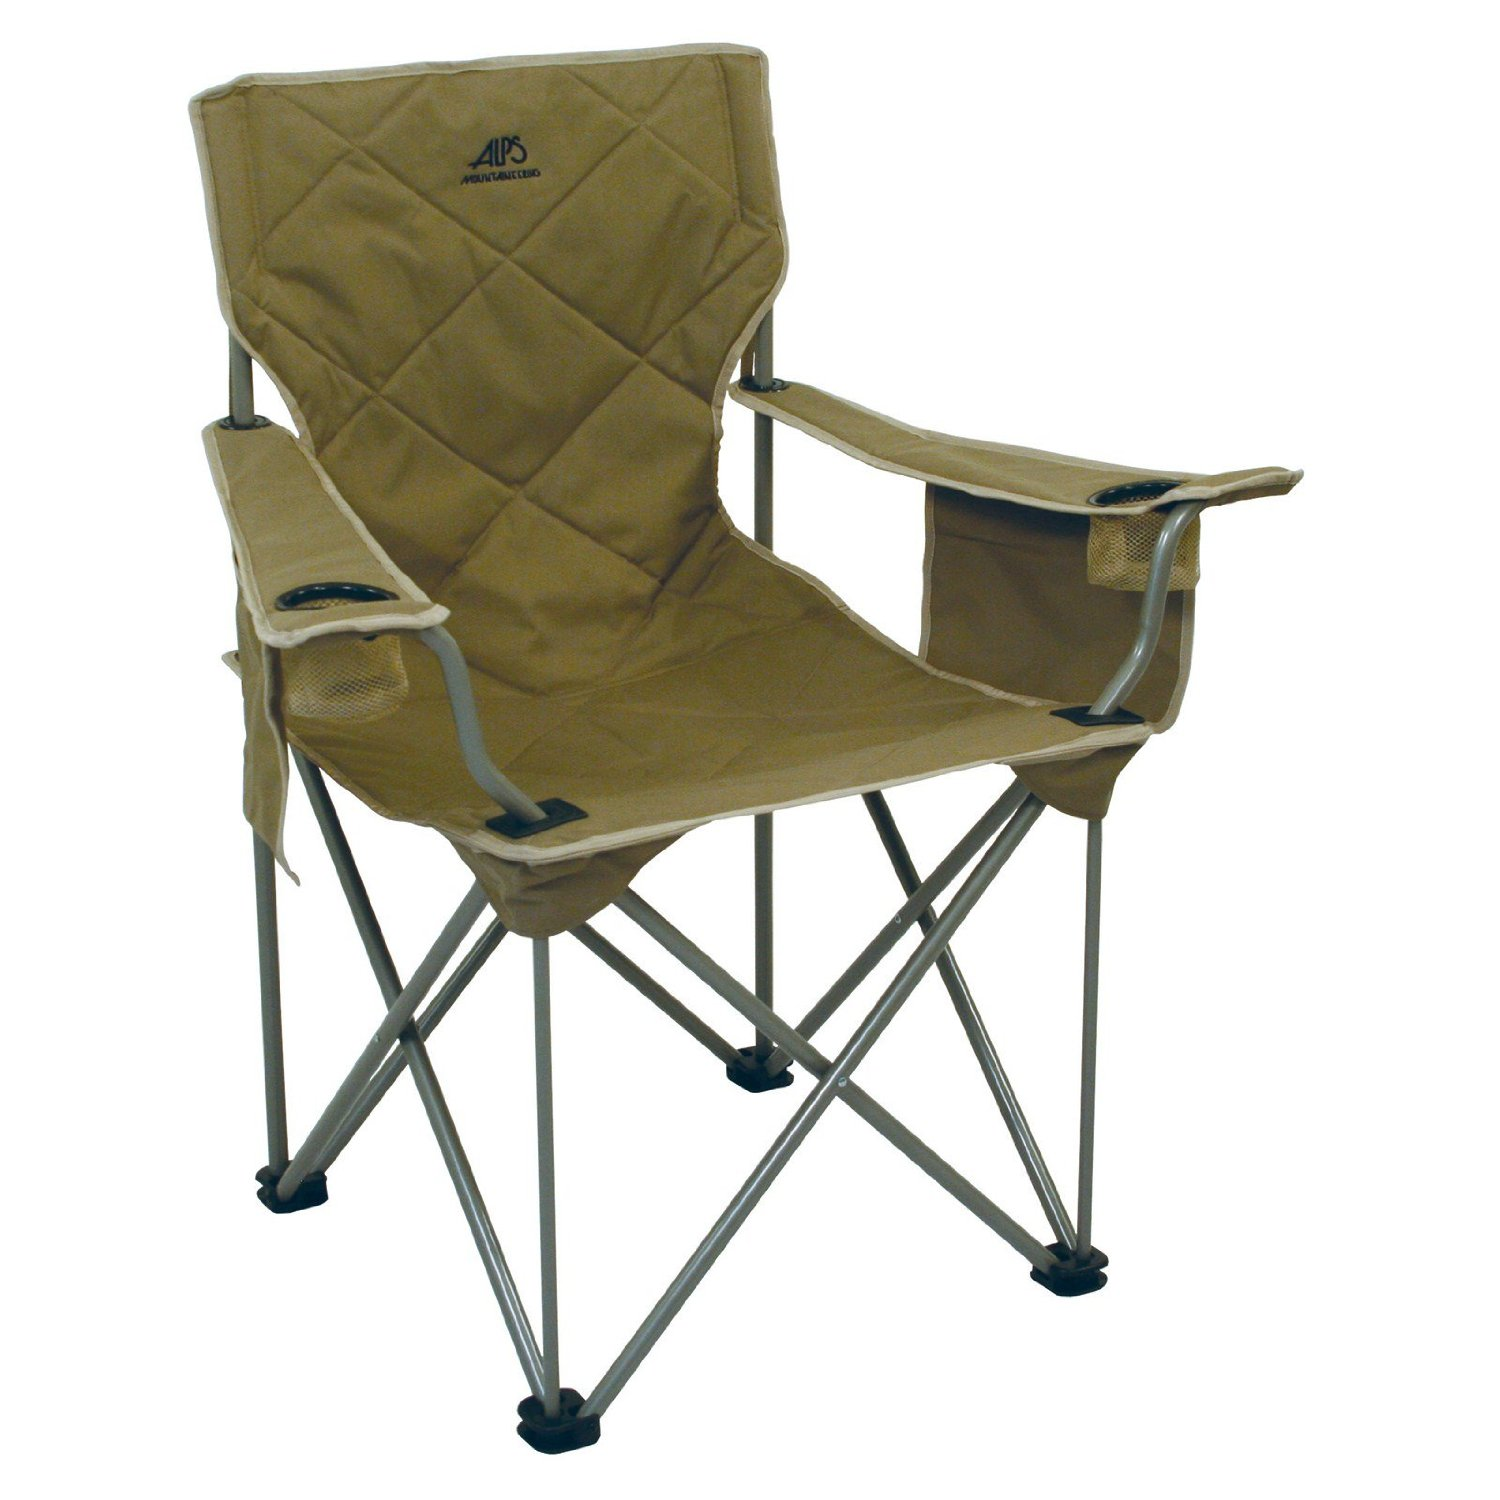 Alps Mountaineering King Kong Folding Camping Chairs